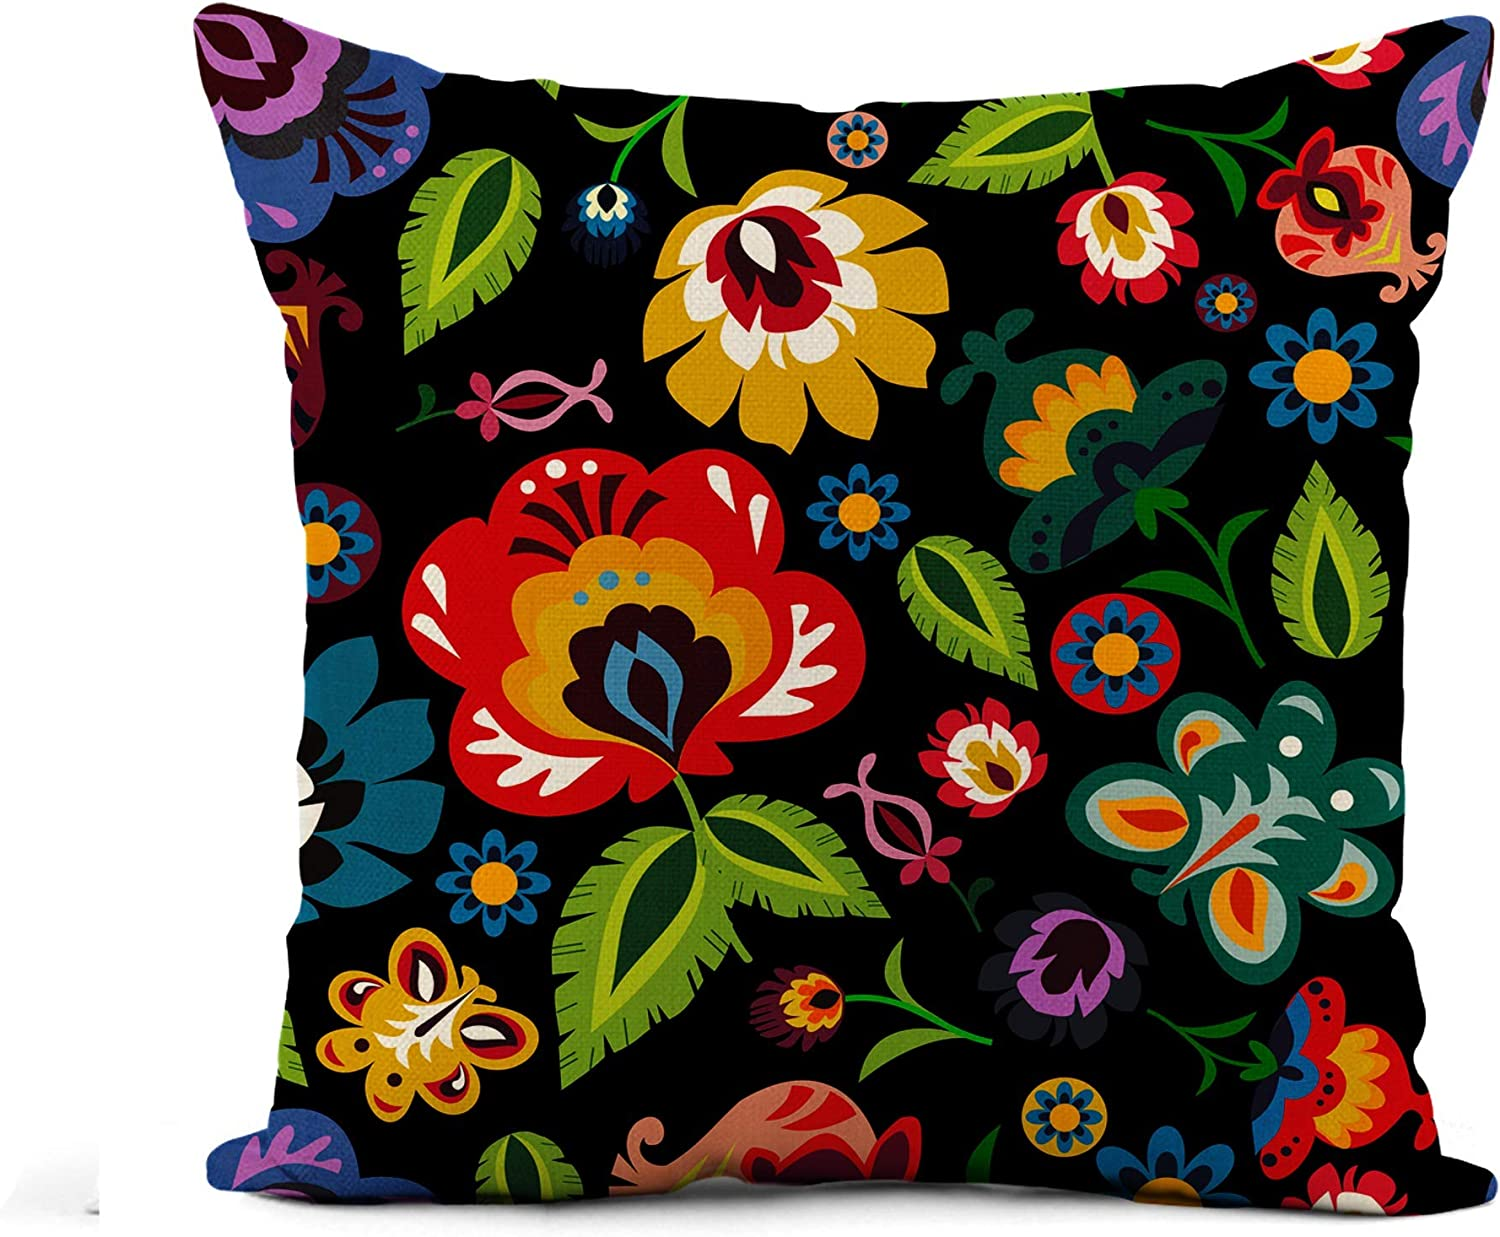 Awowee Flax Throw Pillow Cover Colorful Hungarian Traditional Polish Folk Floral Pattern Green Black 16x16 Inches Pillowcase Home Decor Square Cotton Linen Pillow Case Cushion Cover